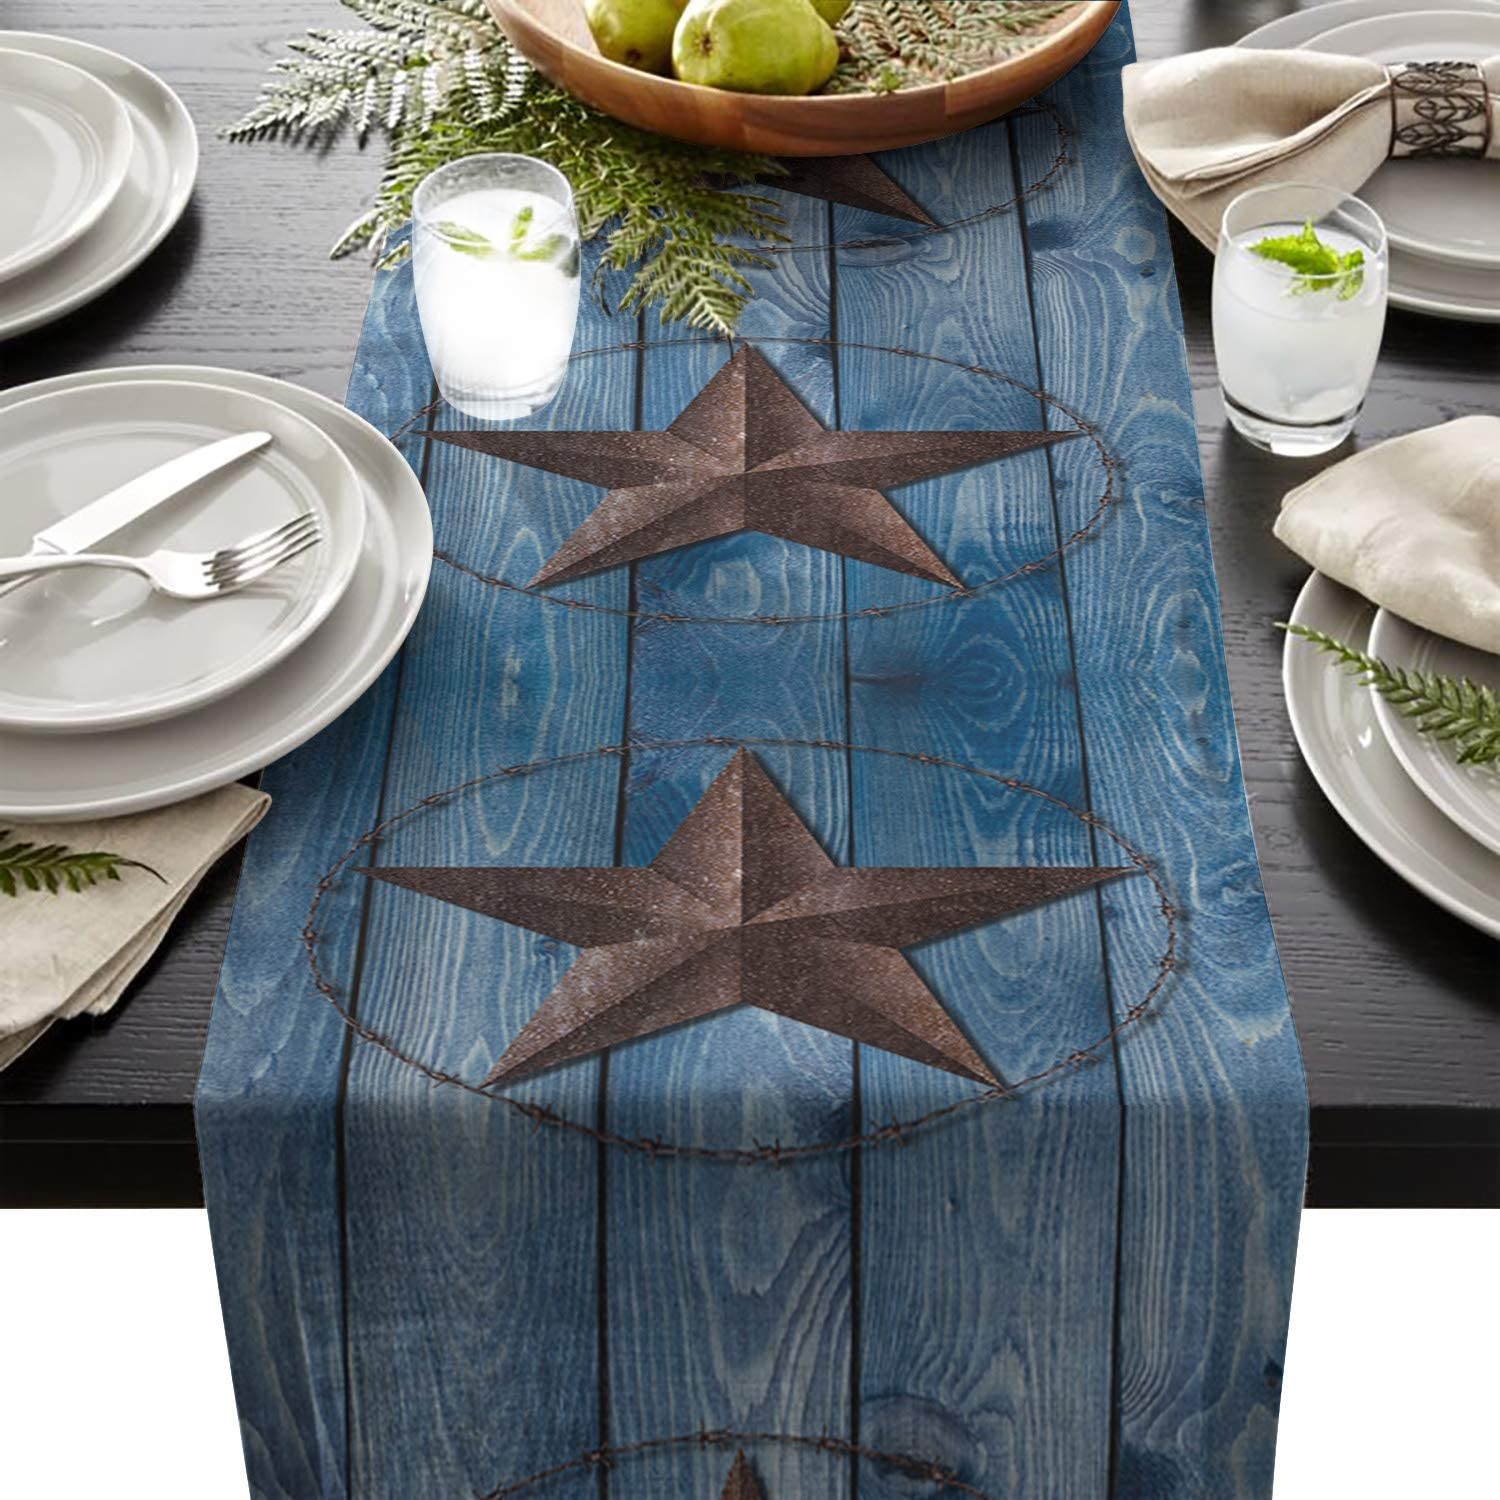 Chic D 13x70inch Table Runner, Western Texas Star Blue Barn Wood Country Cotton Linen Table Setting Decor for Wedding Party Holiday Dinner Home, Machine Washable.